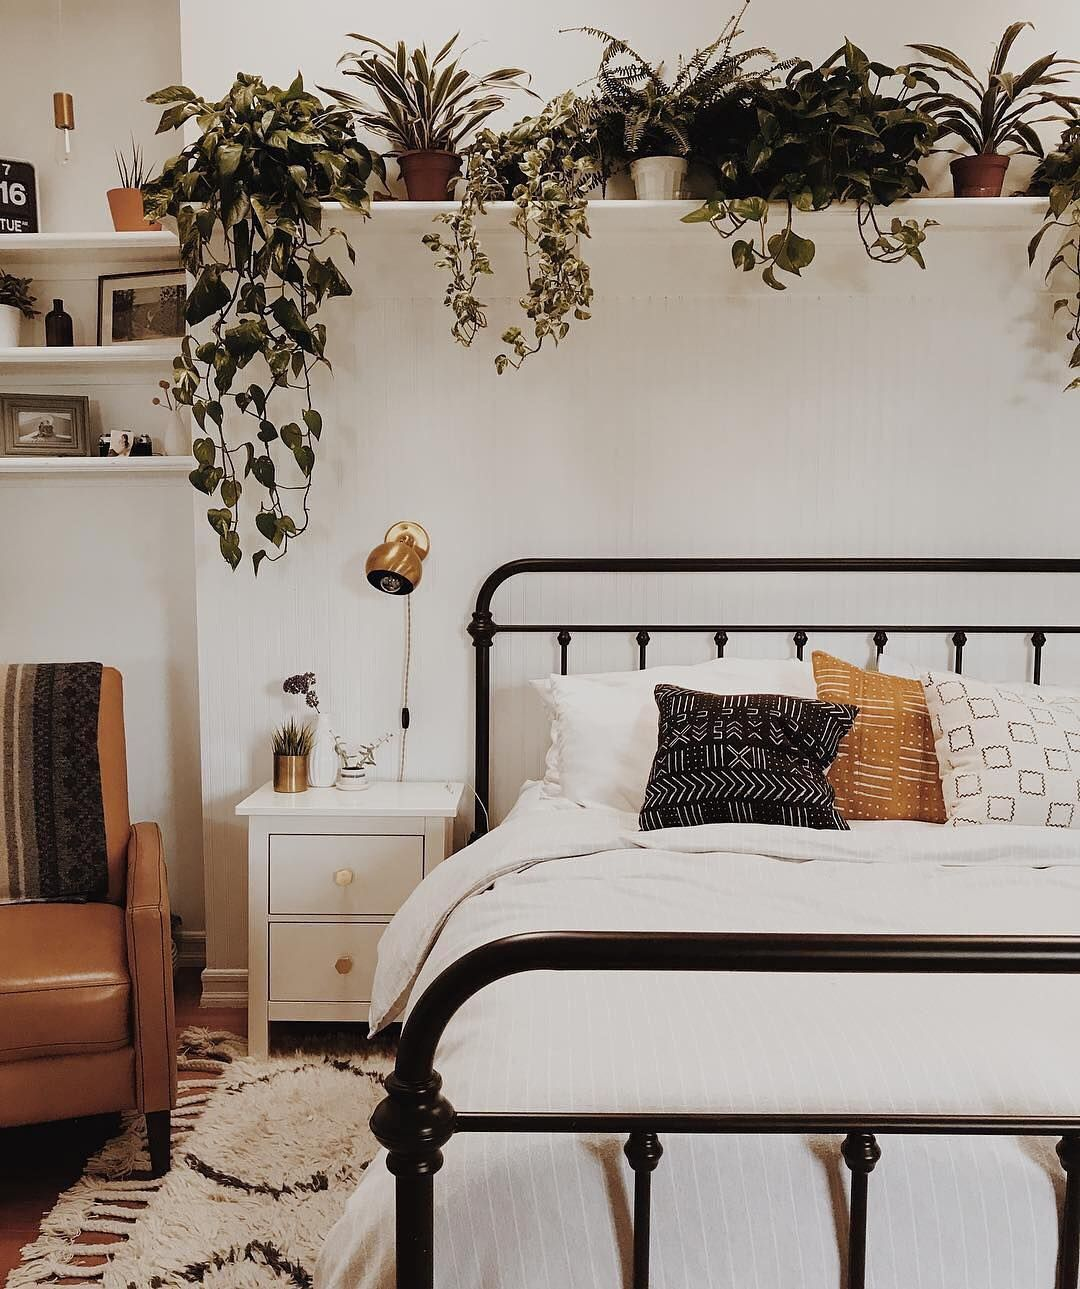 If our bedroom looked as great as